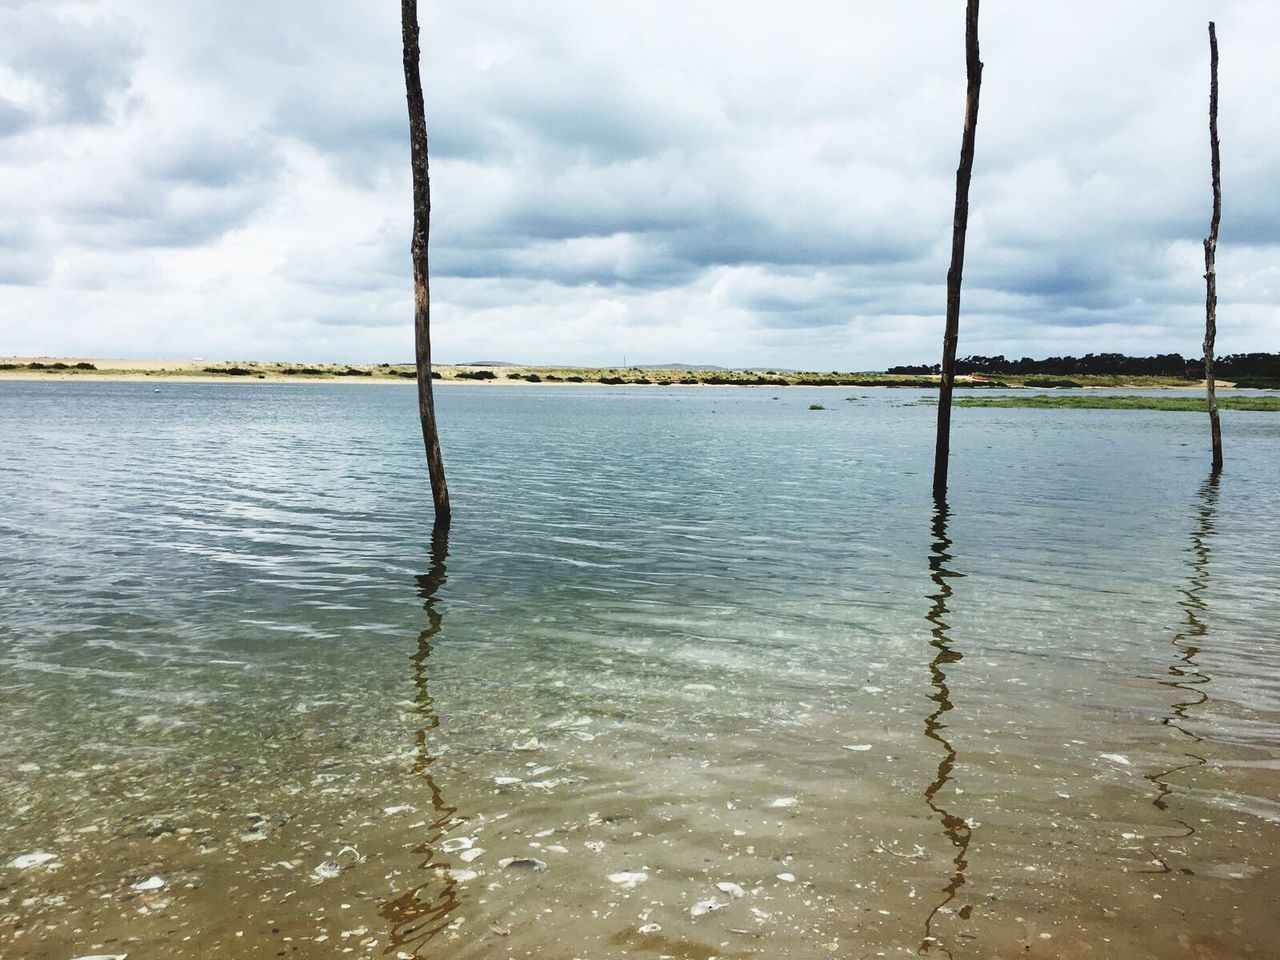 water, sky, tranquility, no people, cloud - sky, tranquil scene, nature, day, scenics, beauty in nature, outdoors, sea